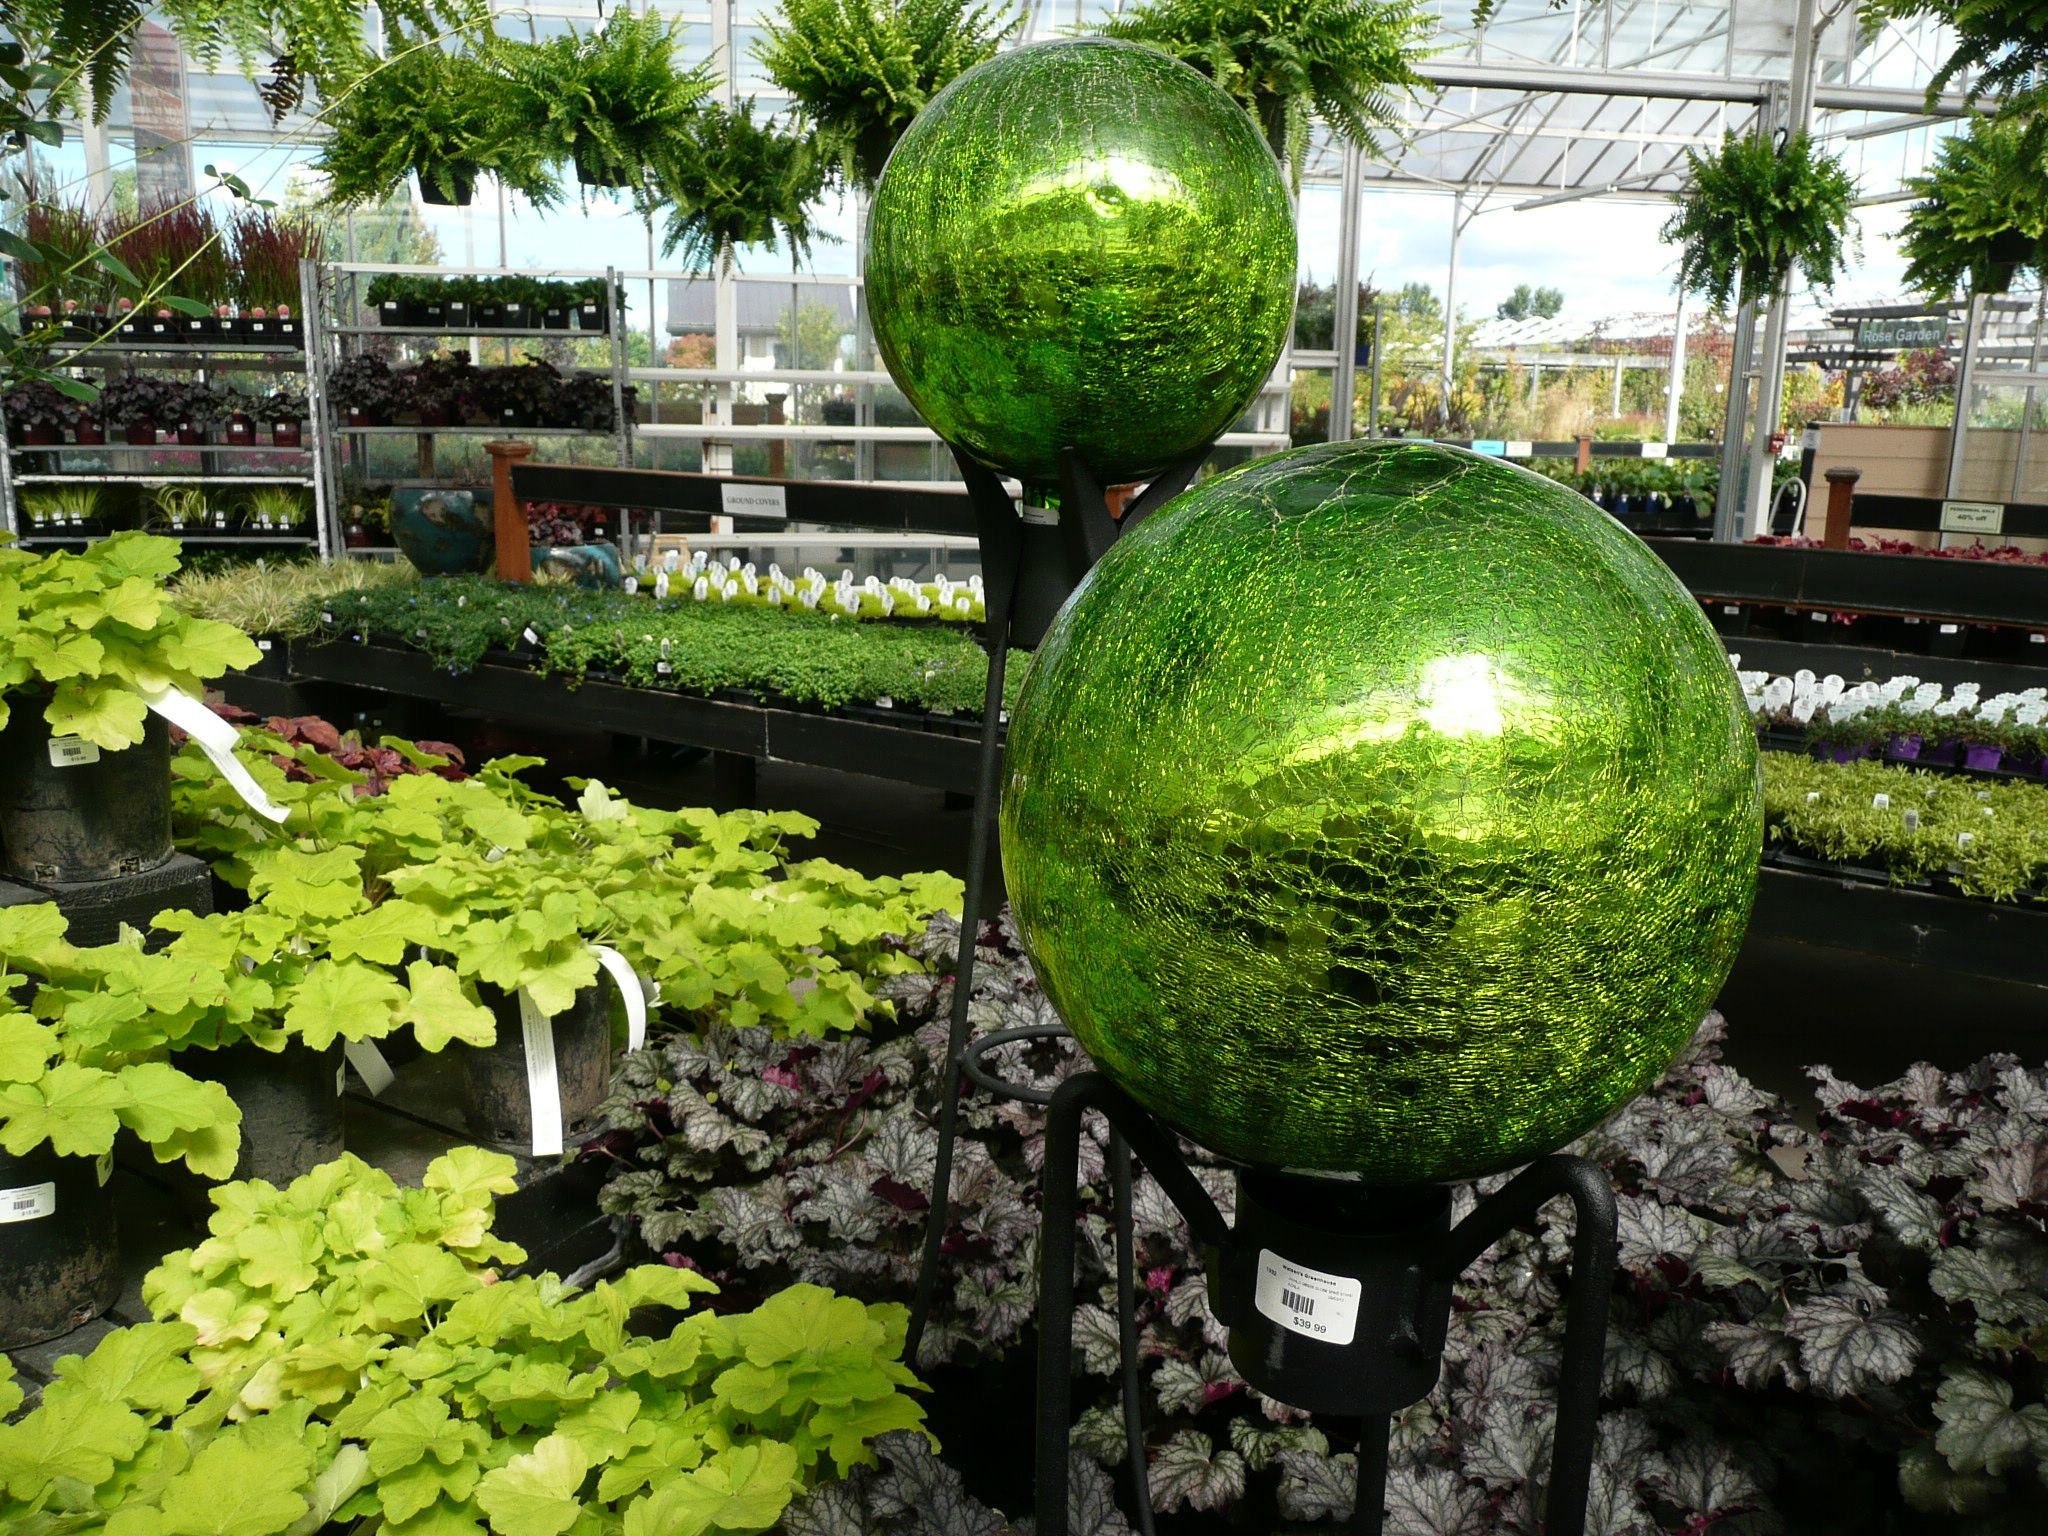 Watson S Greenhouse And Nursery Always Has The Selection